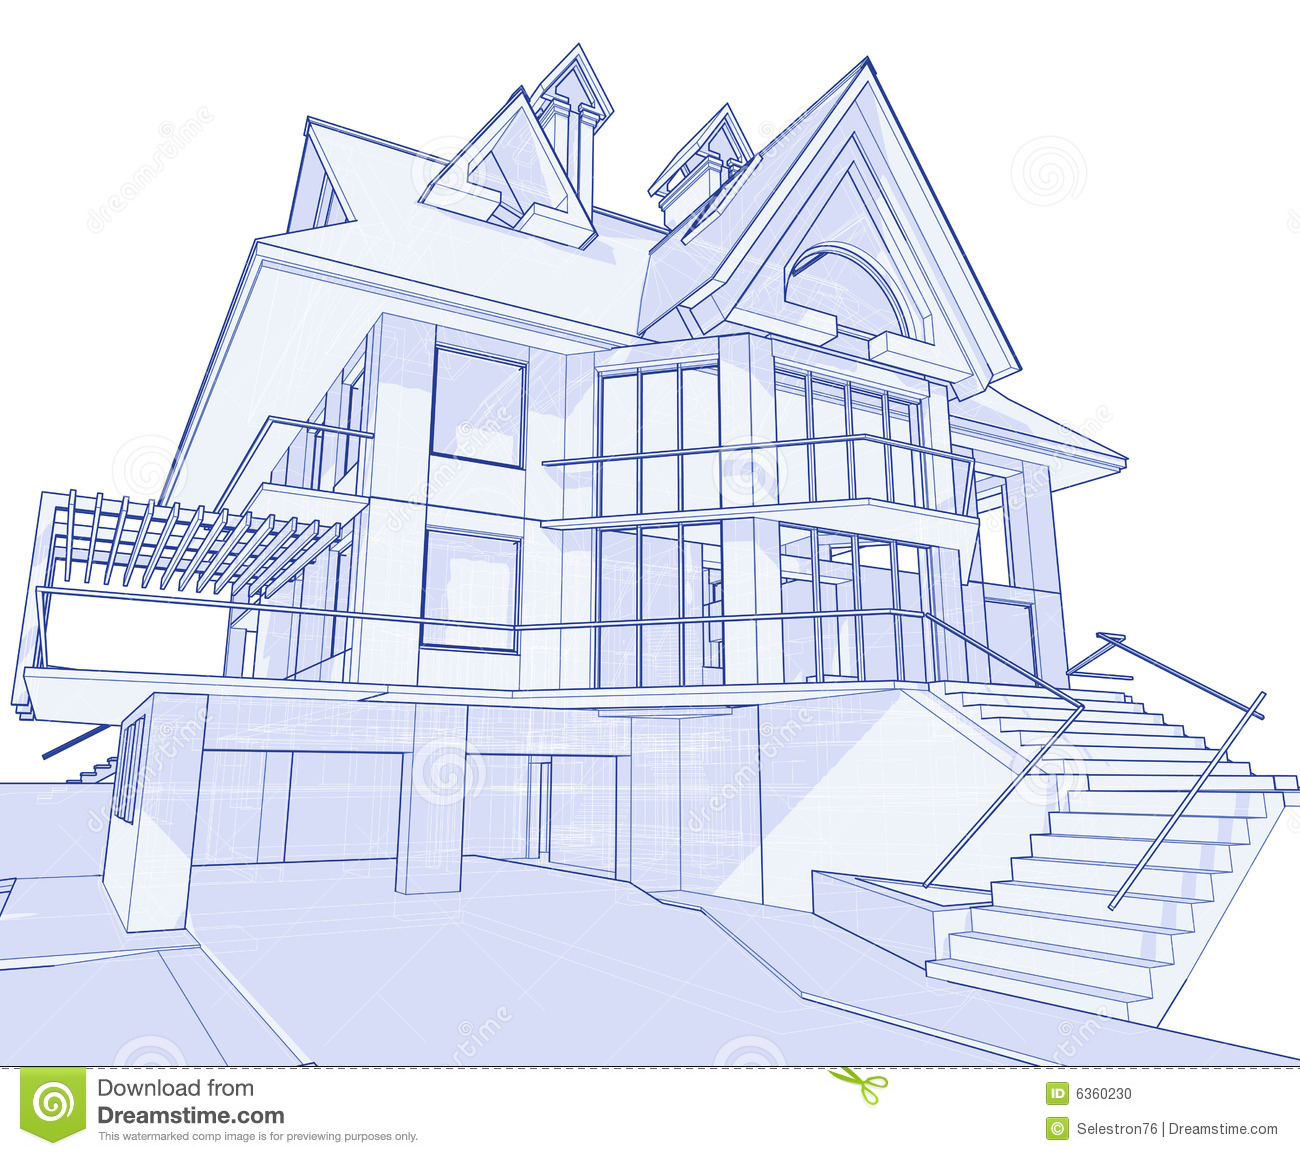 Https Www Dreamstime Com Stock Photo Modern House Blueprint Image6360230